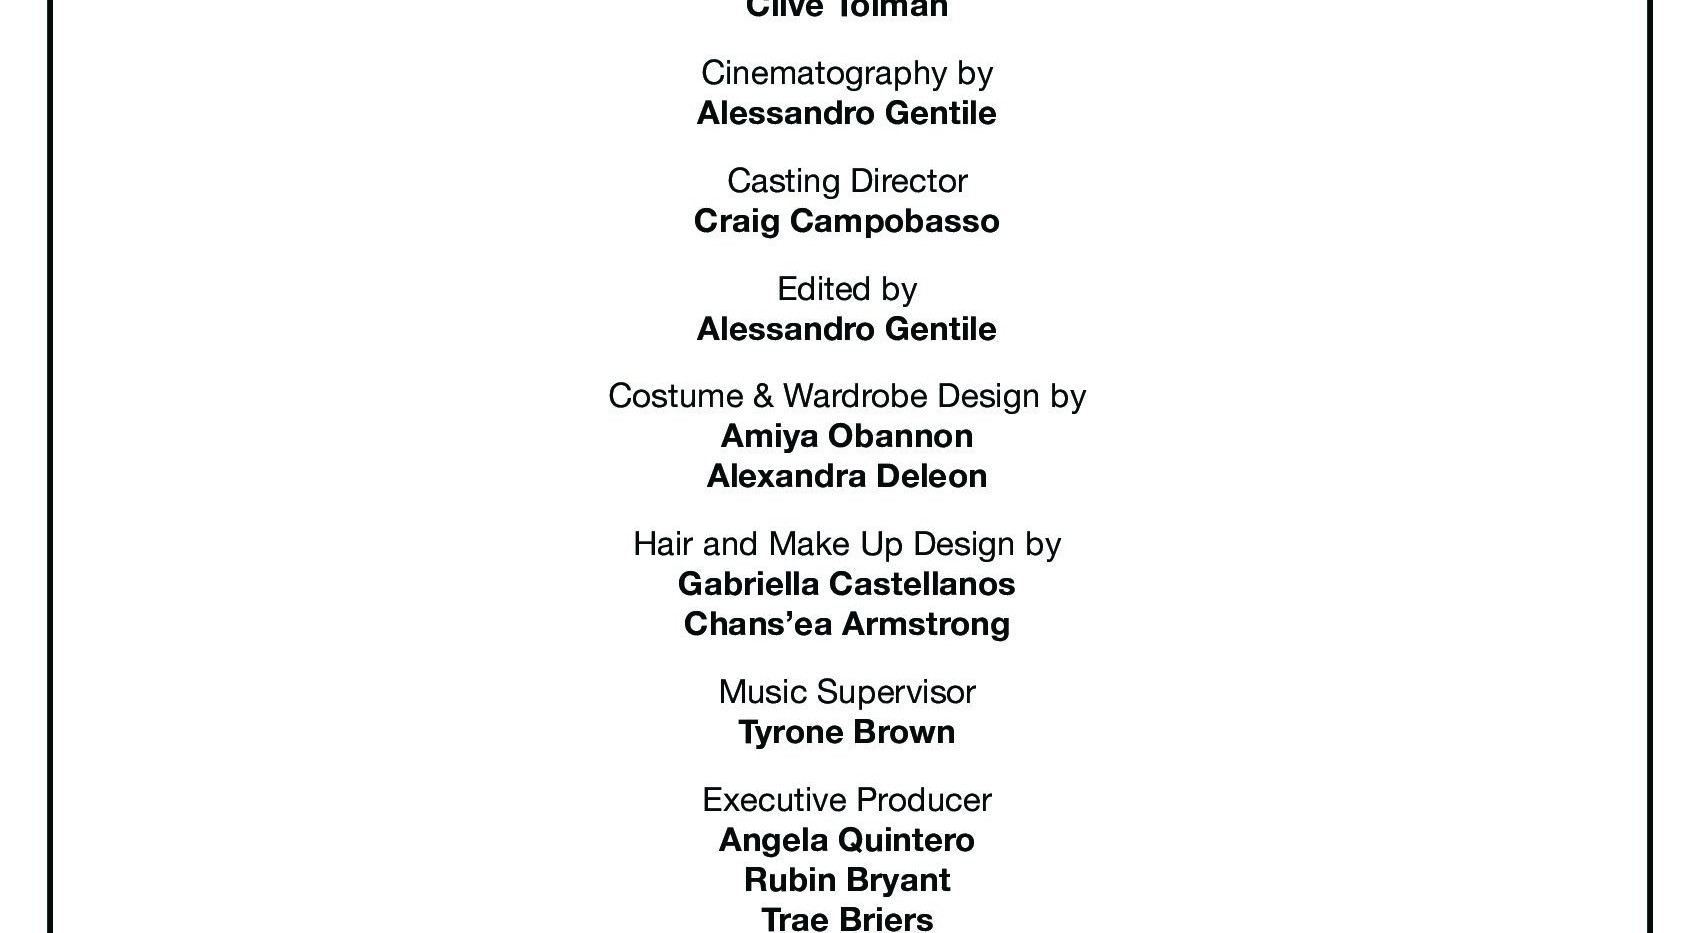 TRADE the film - Production Credits